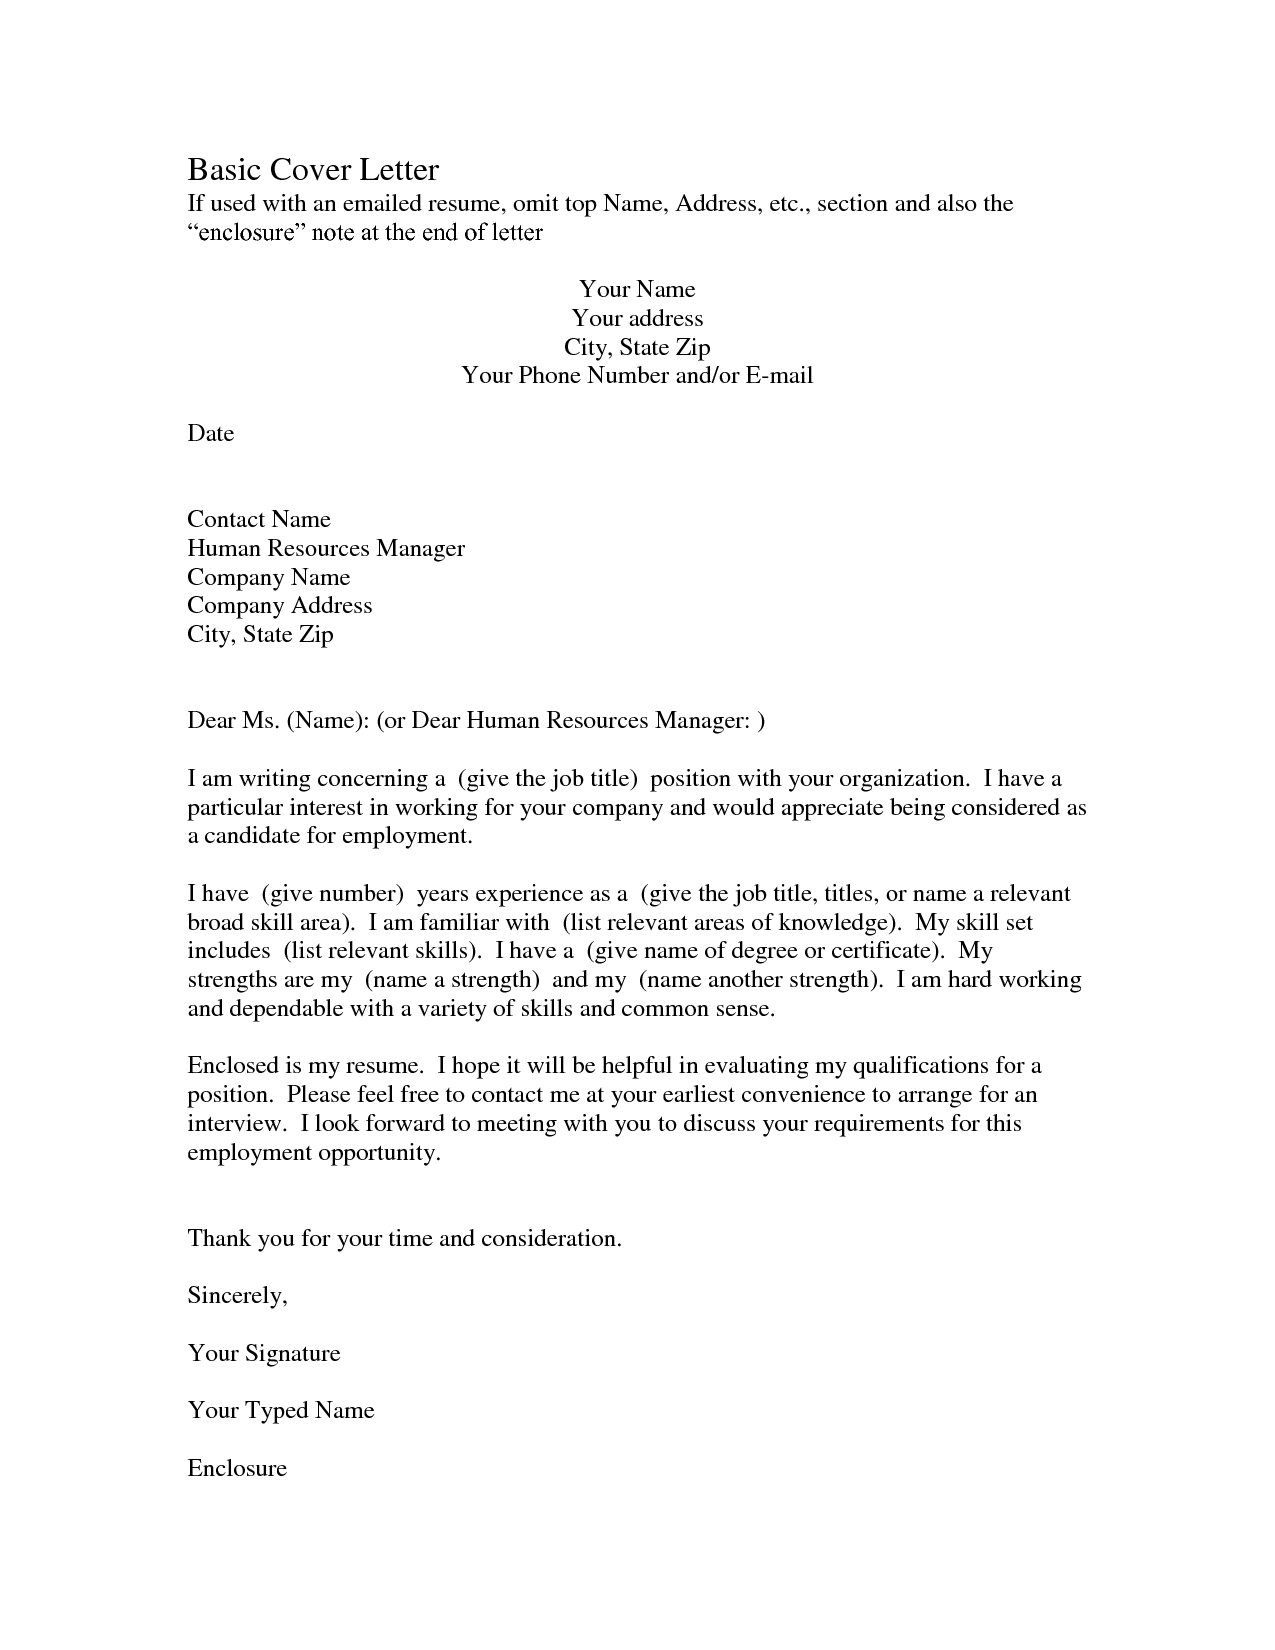 covering letter example simple cover letter examplesimple cover letter application letter sample - Template For Writing A Cover Letter